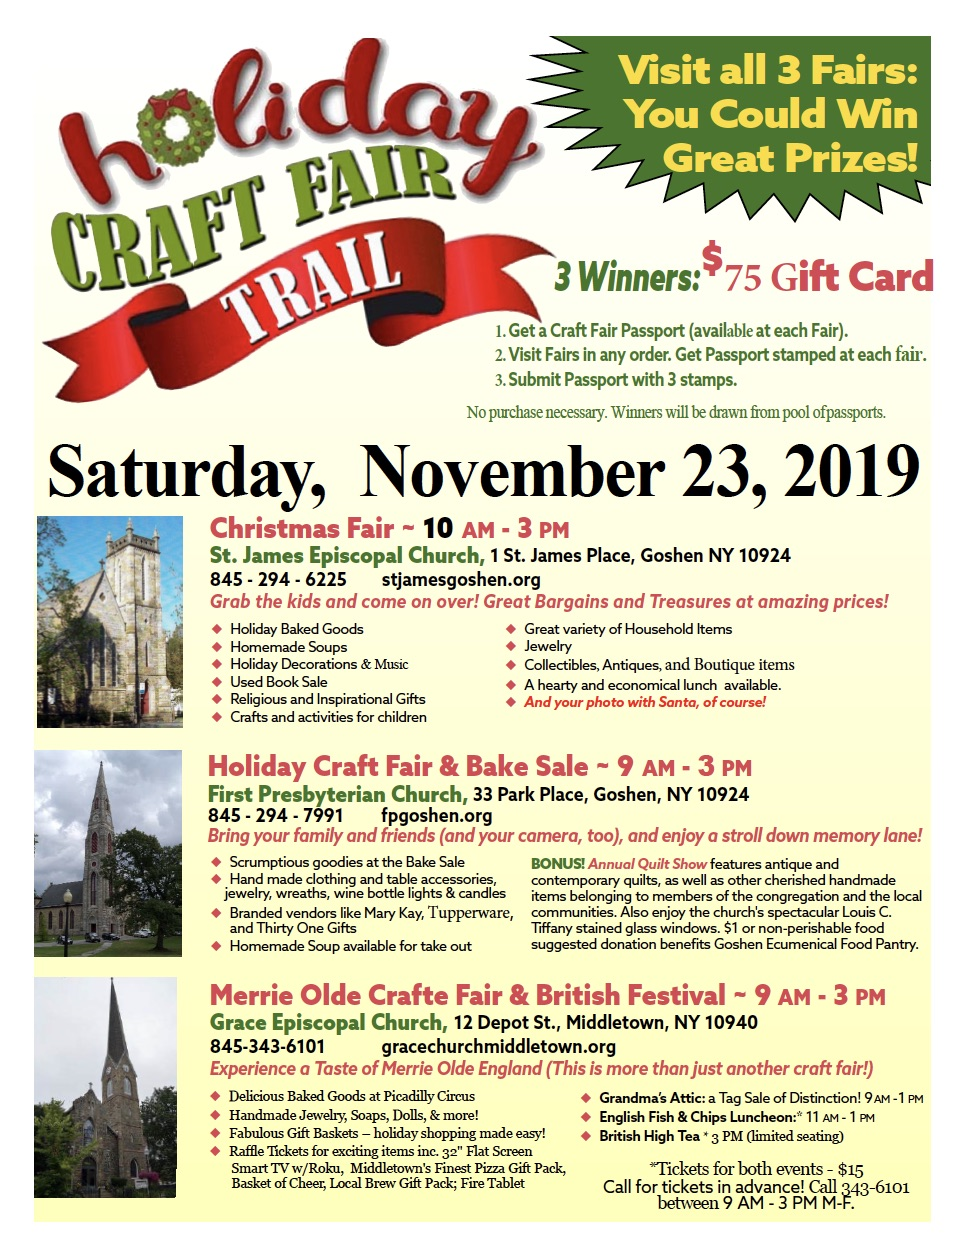 CraftFairTrail